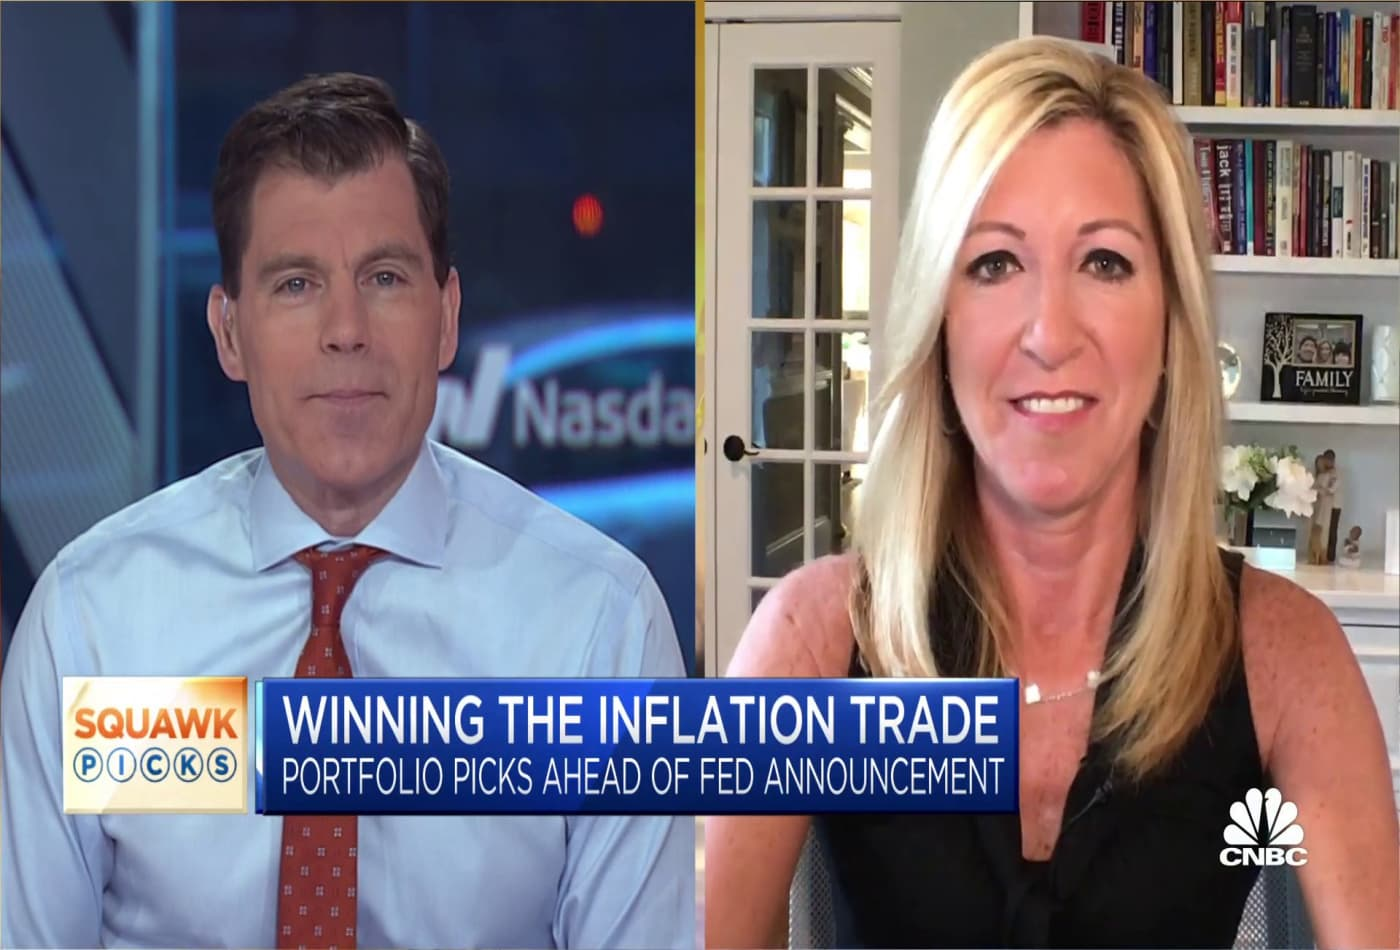 Hightower's Stephanie Link explains her top stock picks ahead of Fed comments on inflation